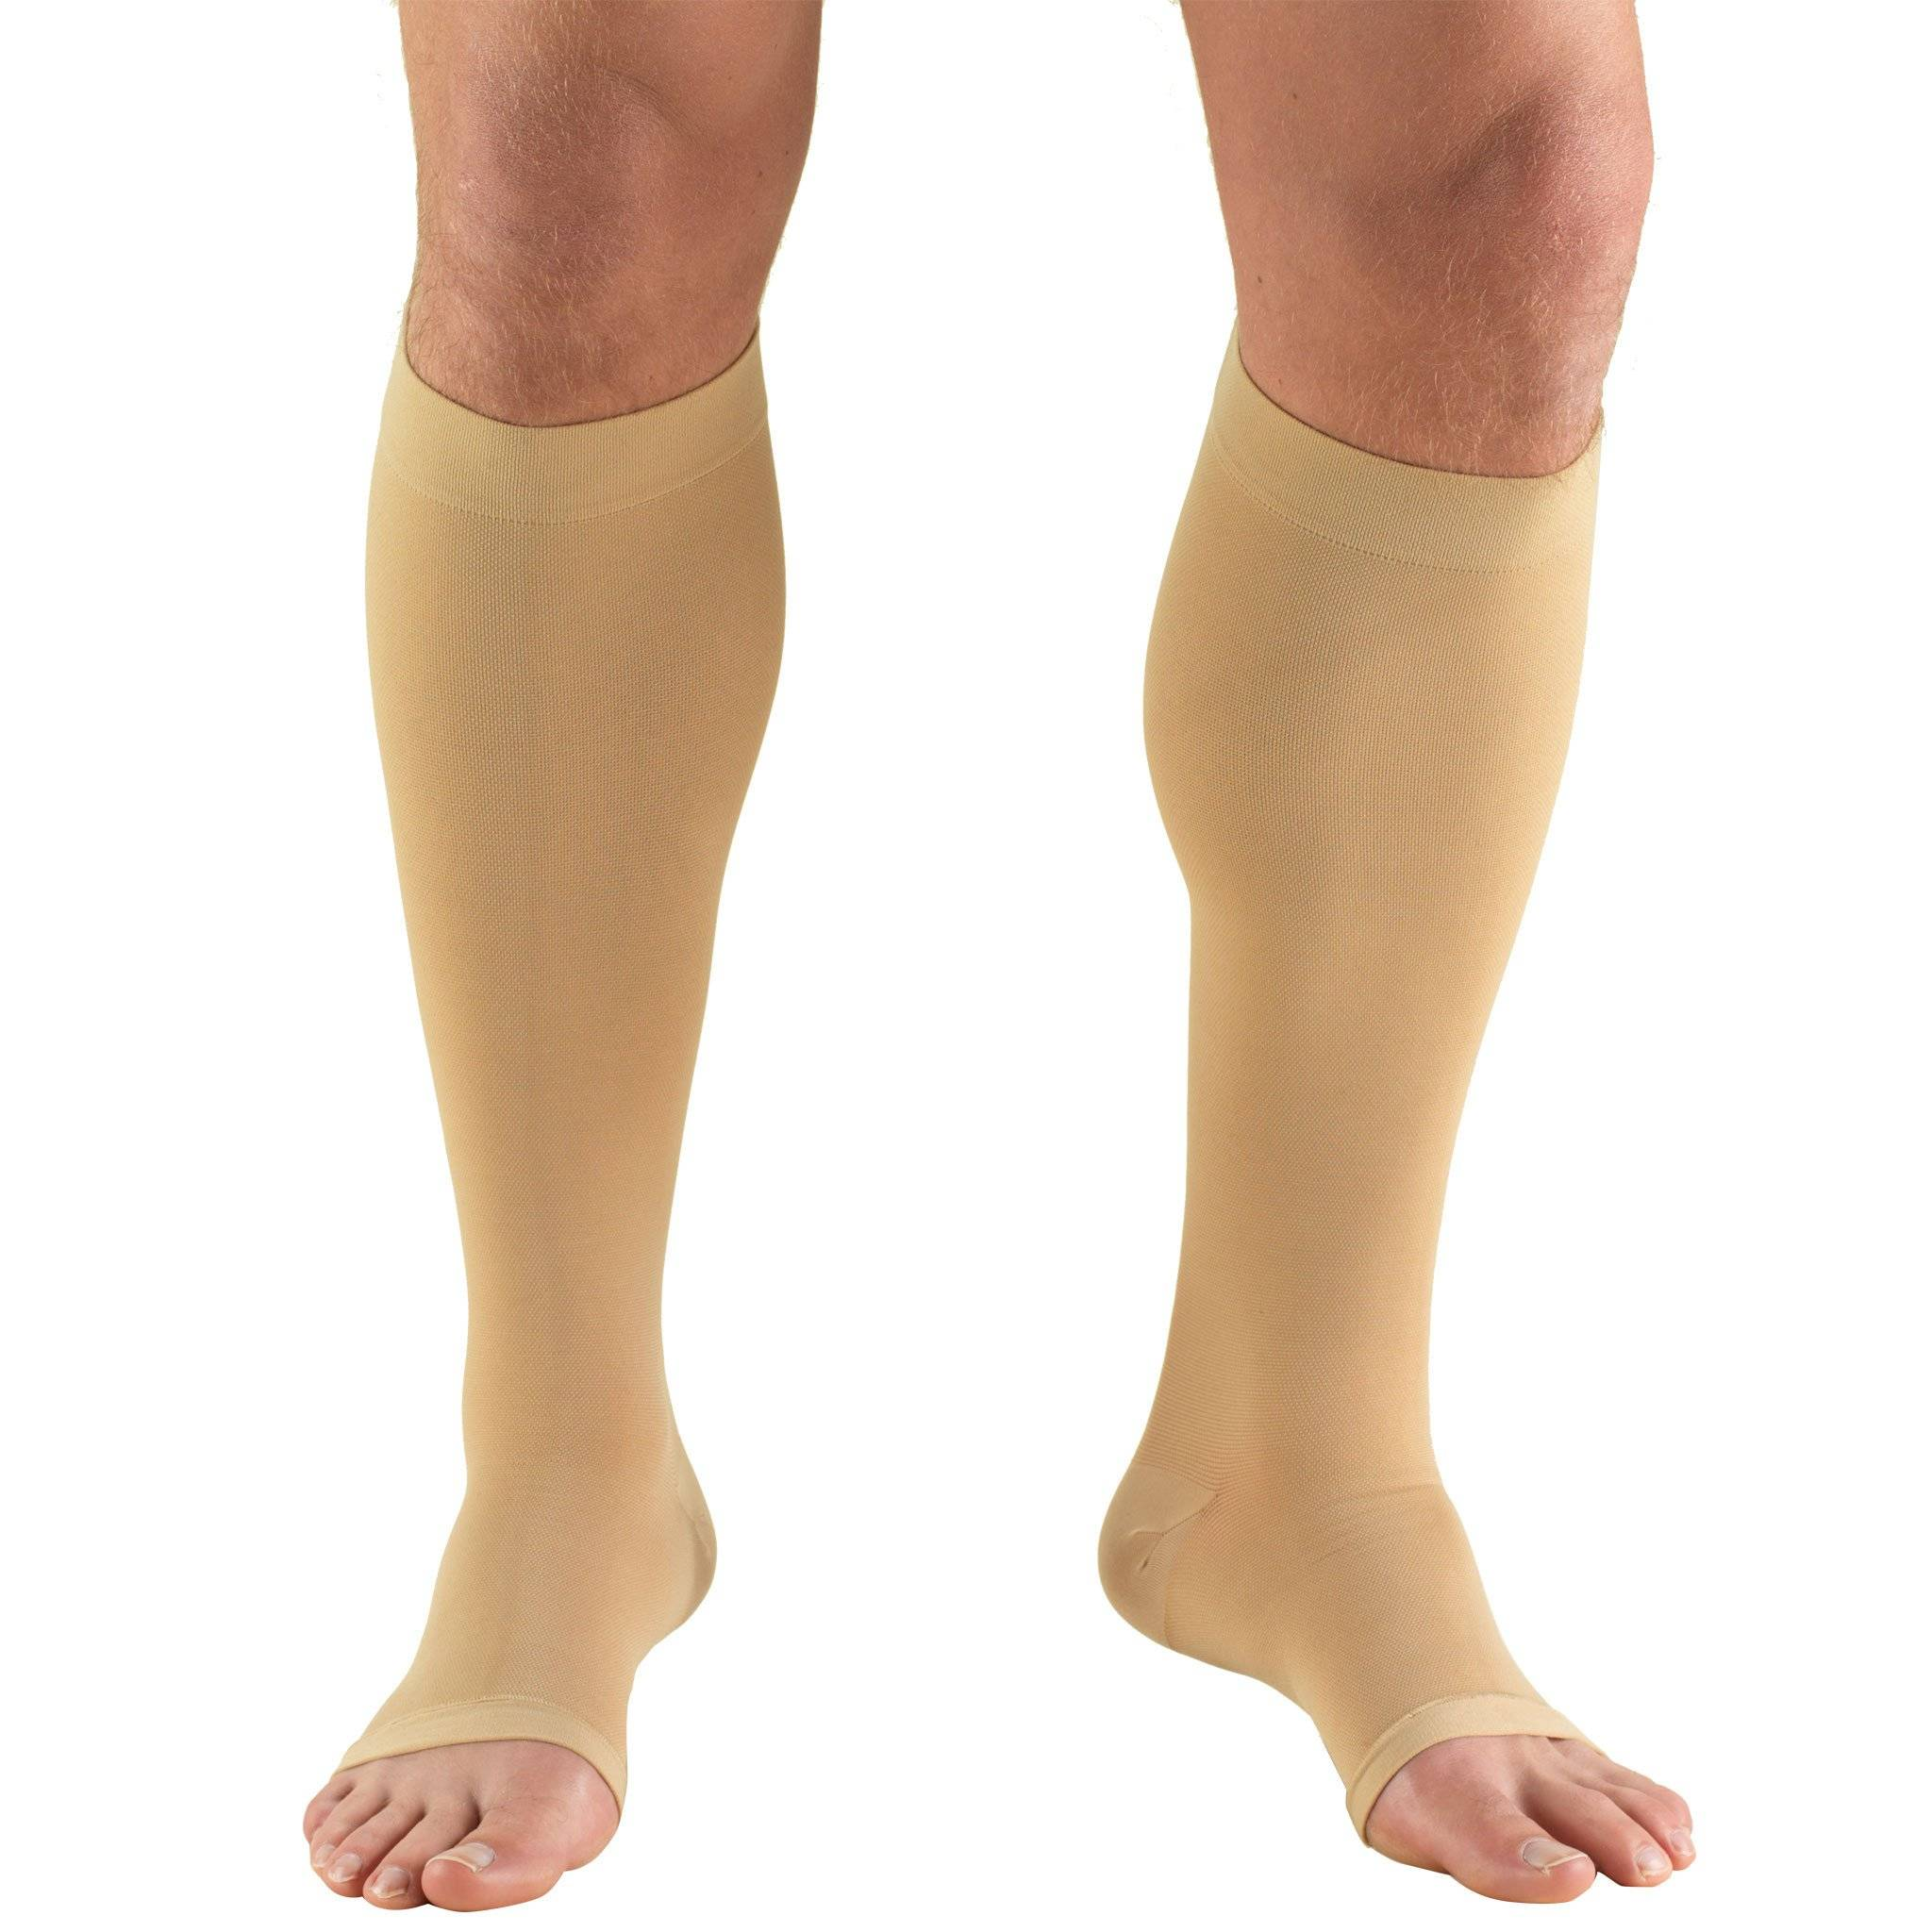 c8c9aa451 Medical Thigh High Open Toe – TruformStore